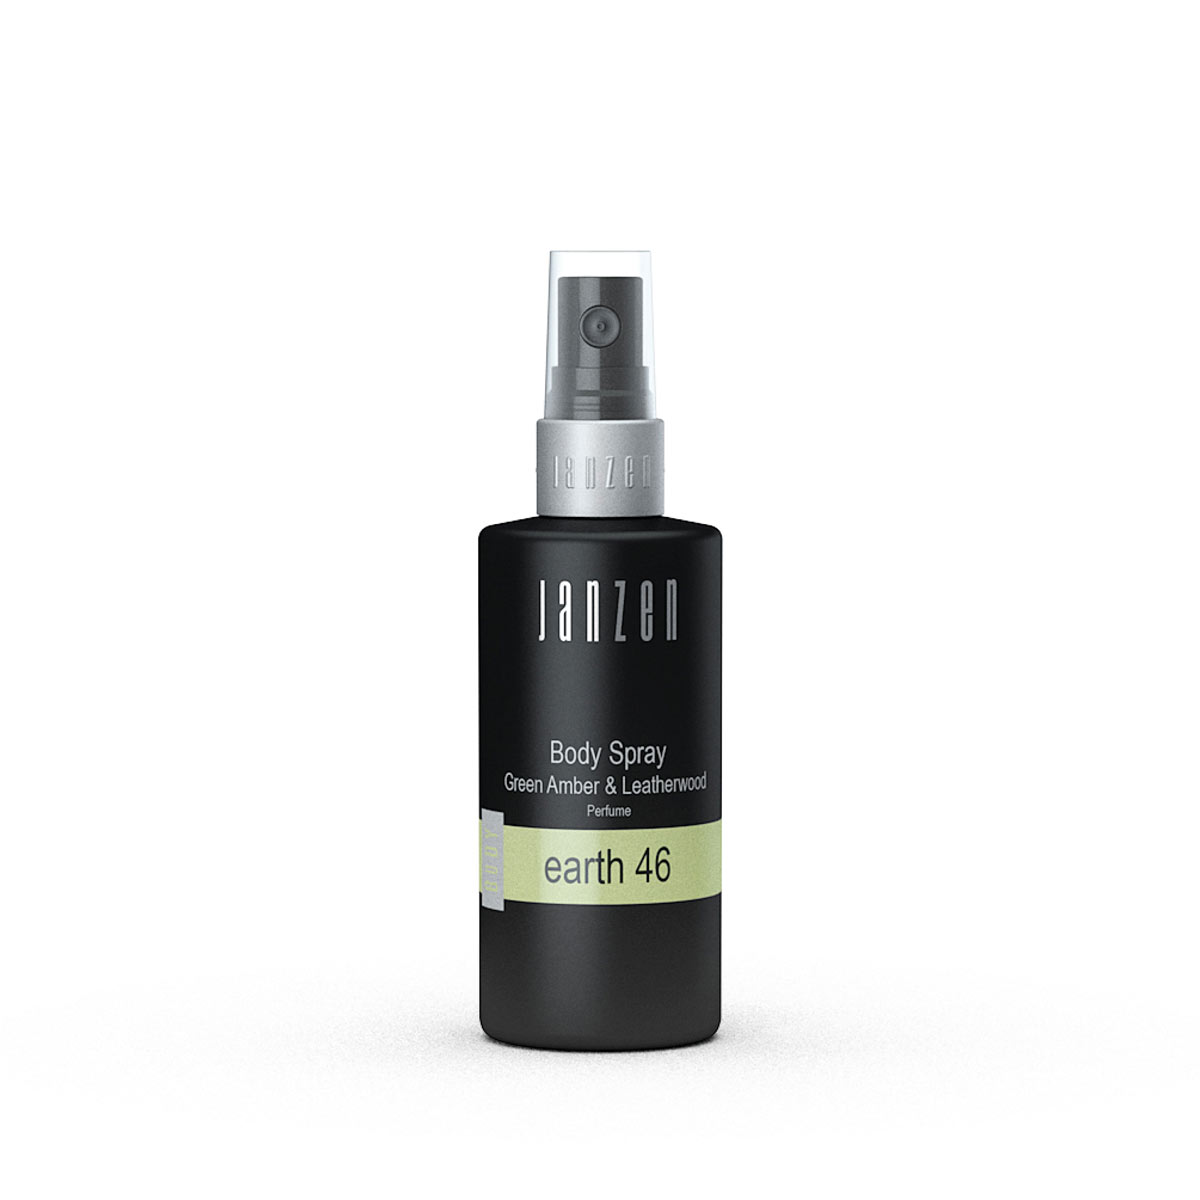 JANZEN Body Spray Earth 46